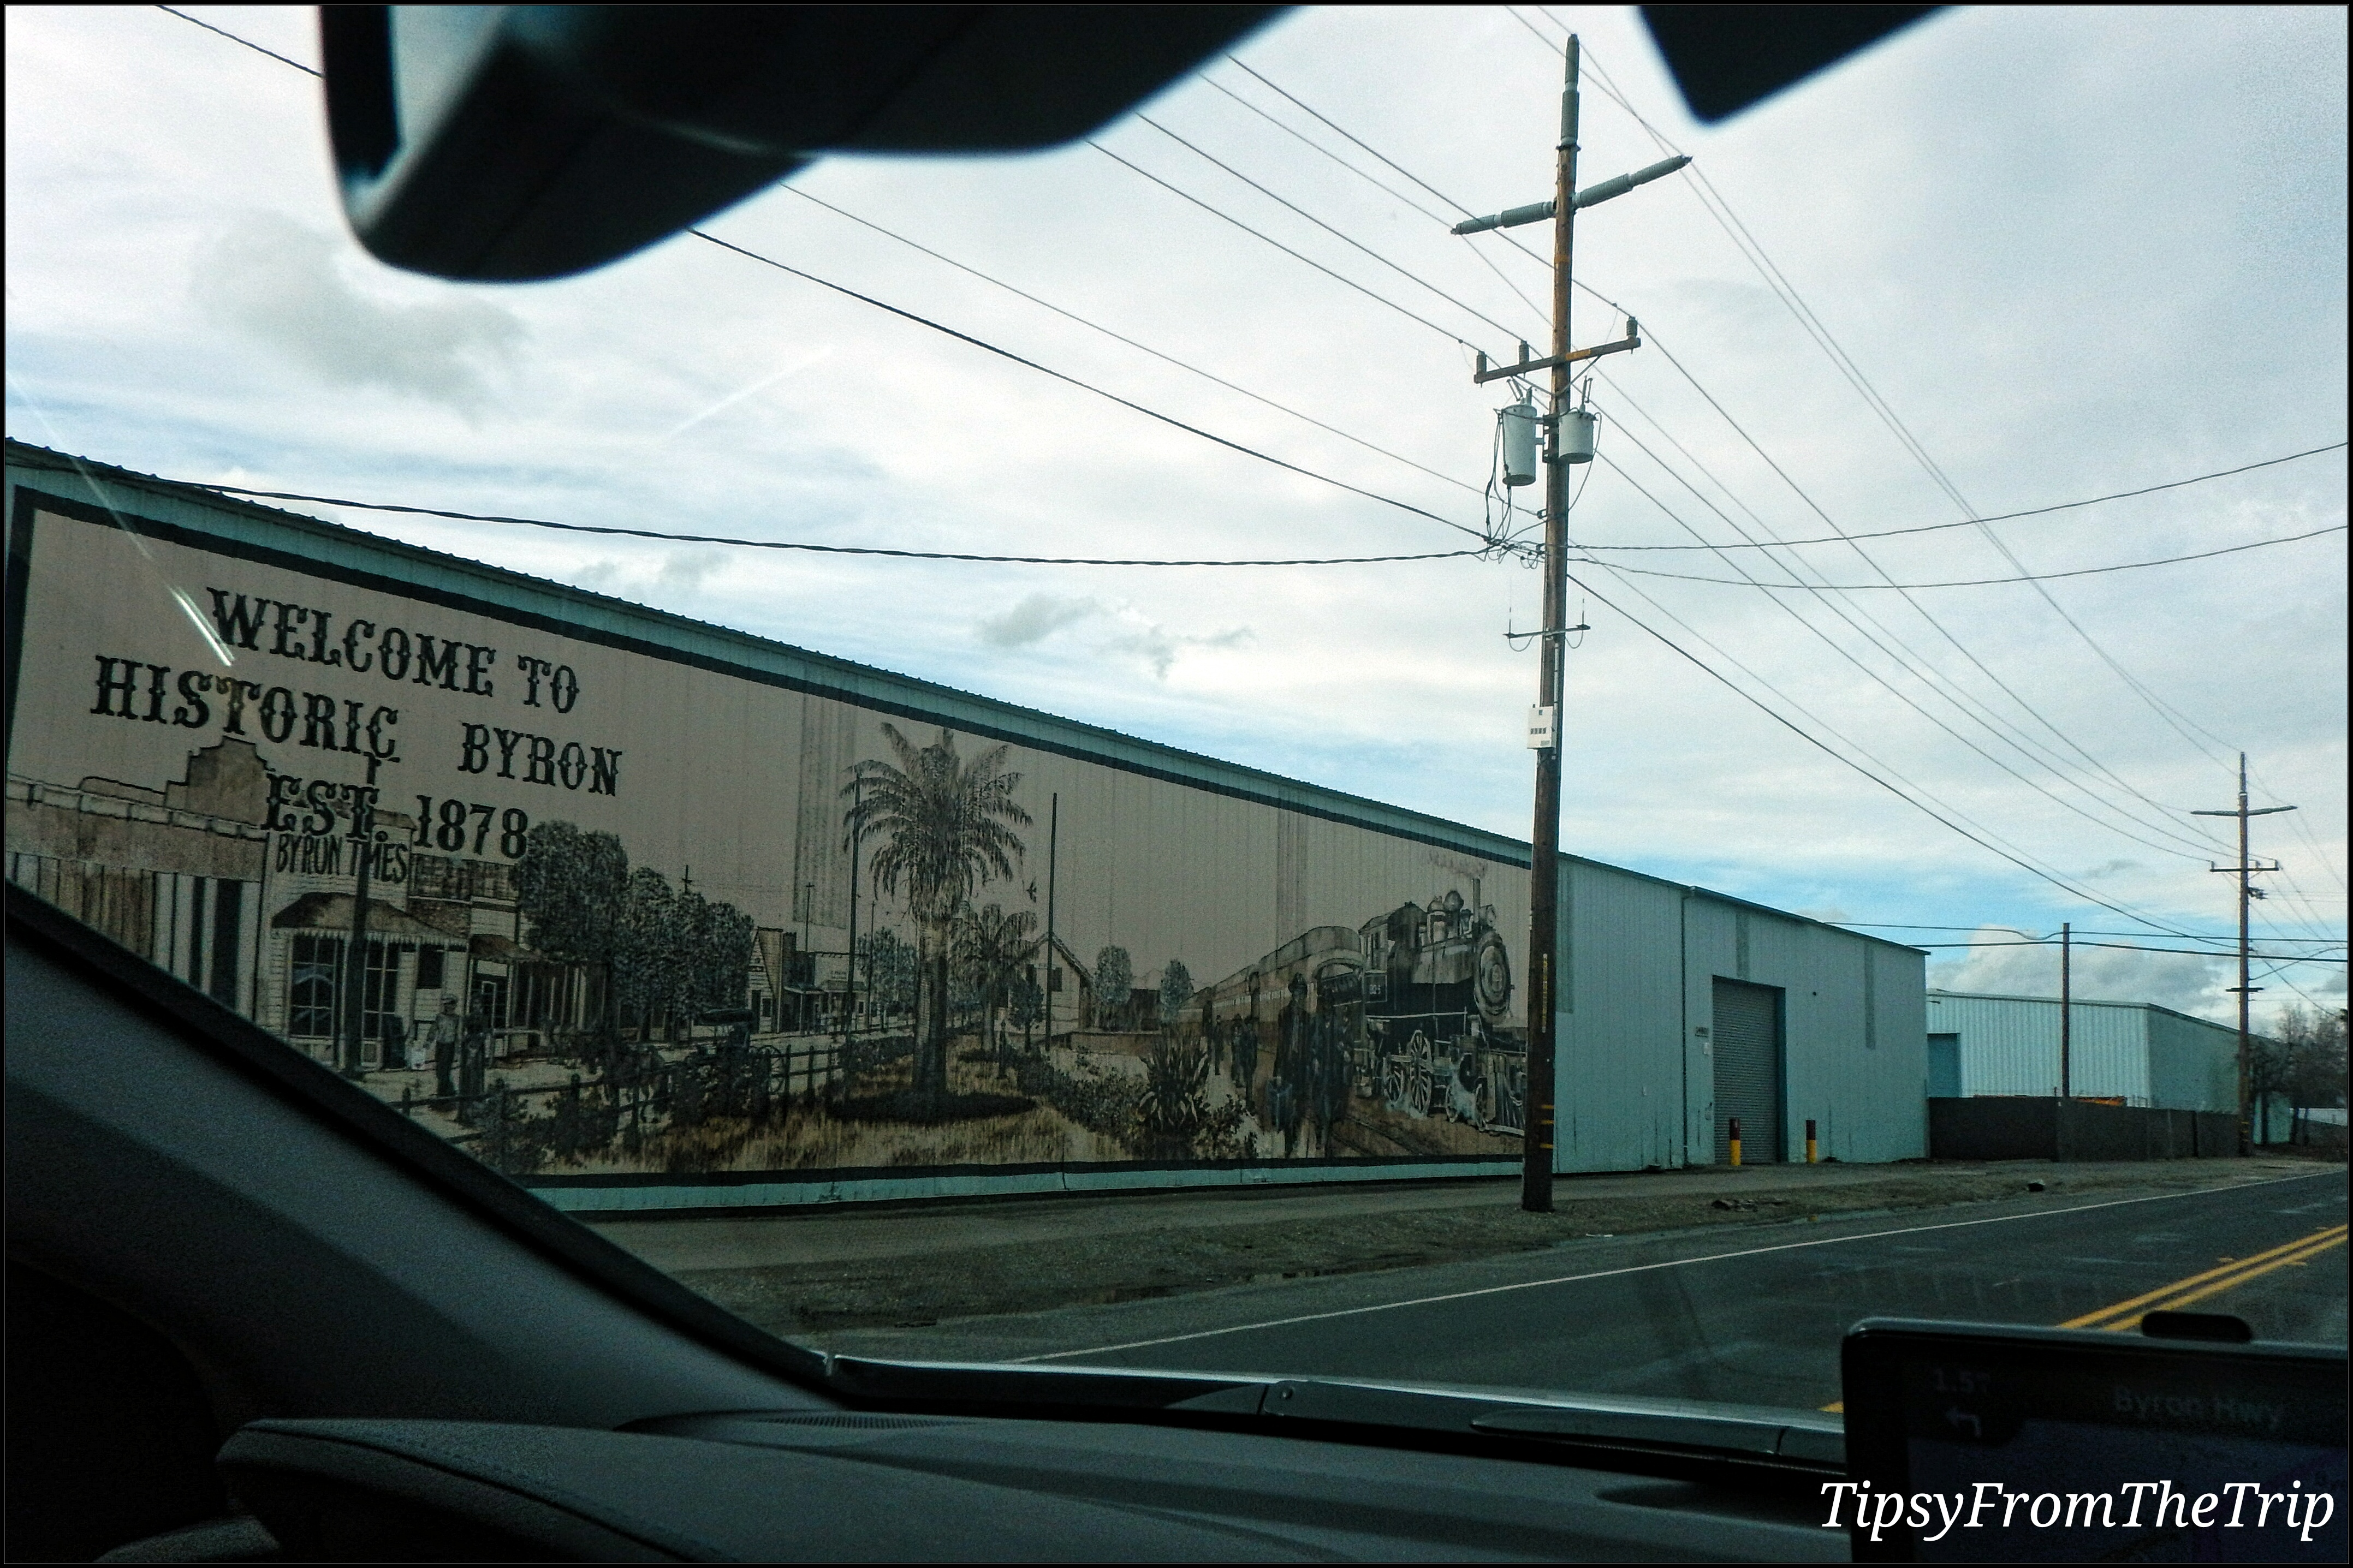 Welcome to Historic Byron mural